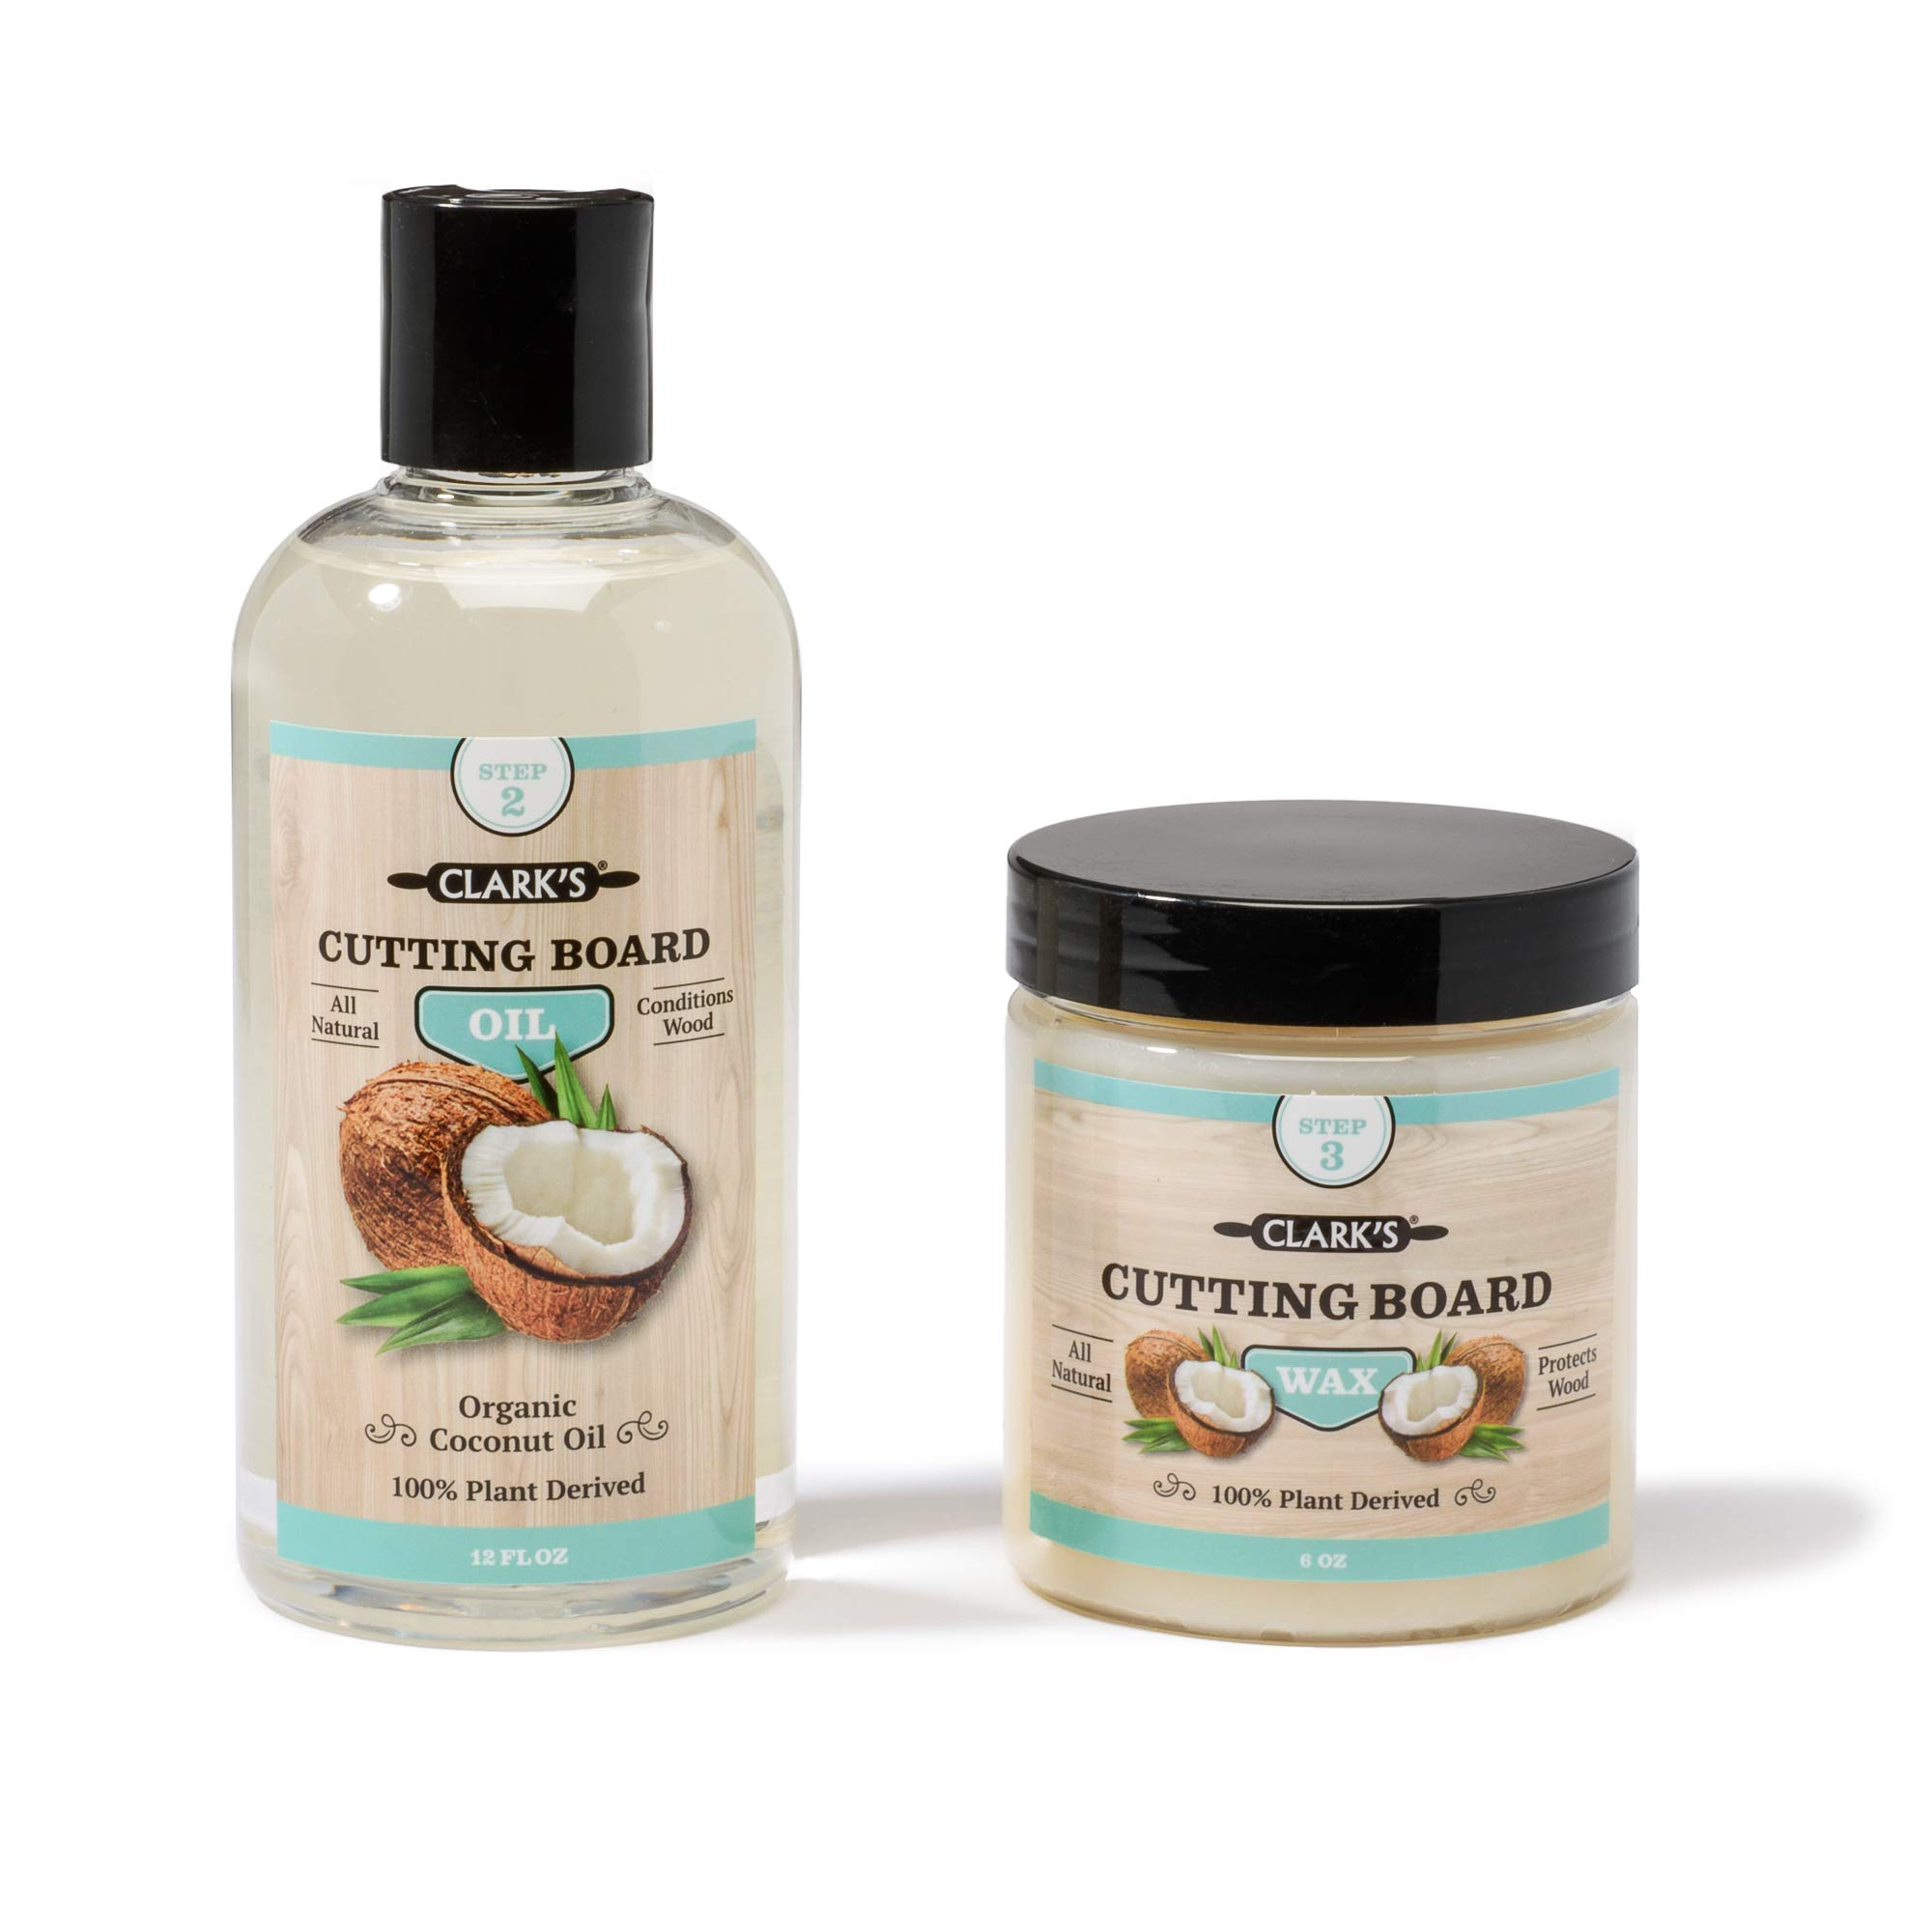 Coconut Cutting Board Oil & Wax (2 Pack) by CLARK'S | Made with Refined Coconut Oil, Natural Beeswax and Carnauba Wax | Does Not Contain Mineral Oil